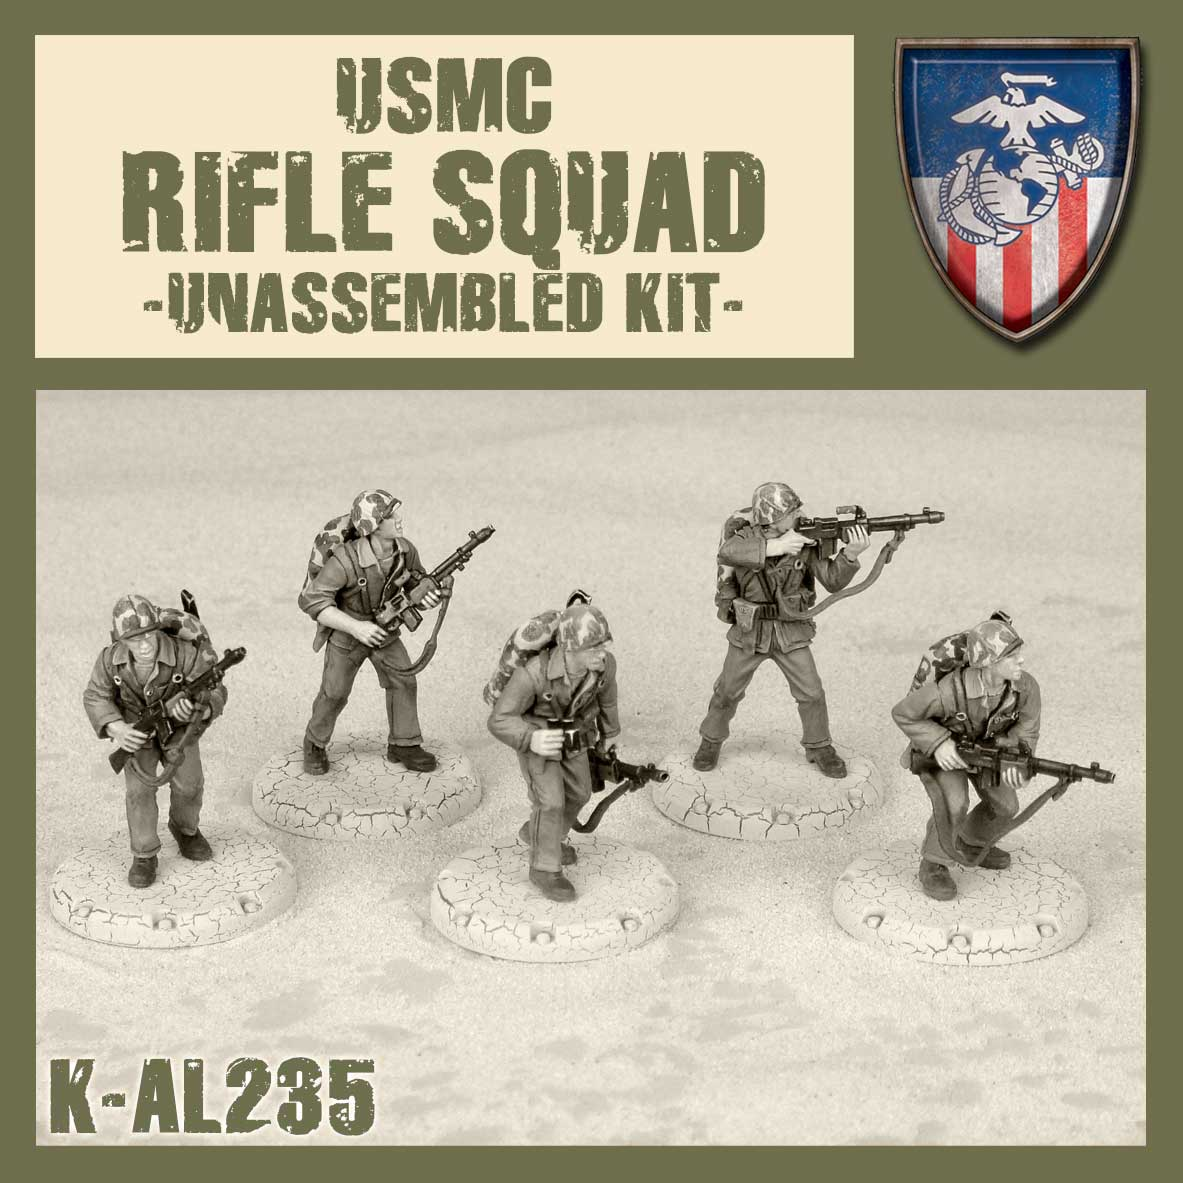 USMC Rifle Squad Kit